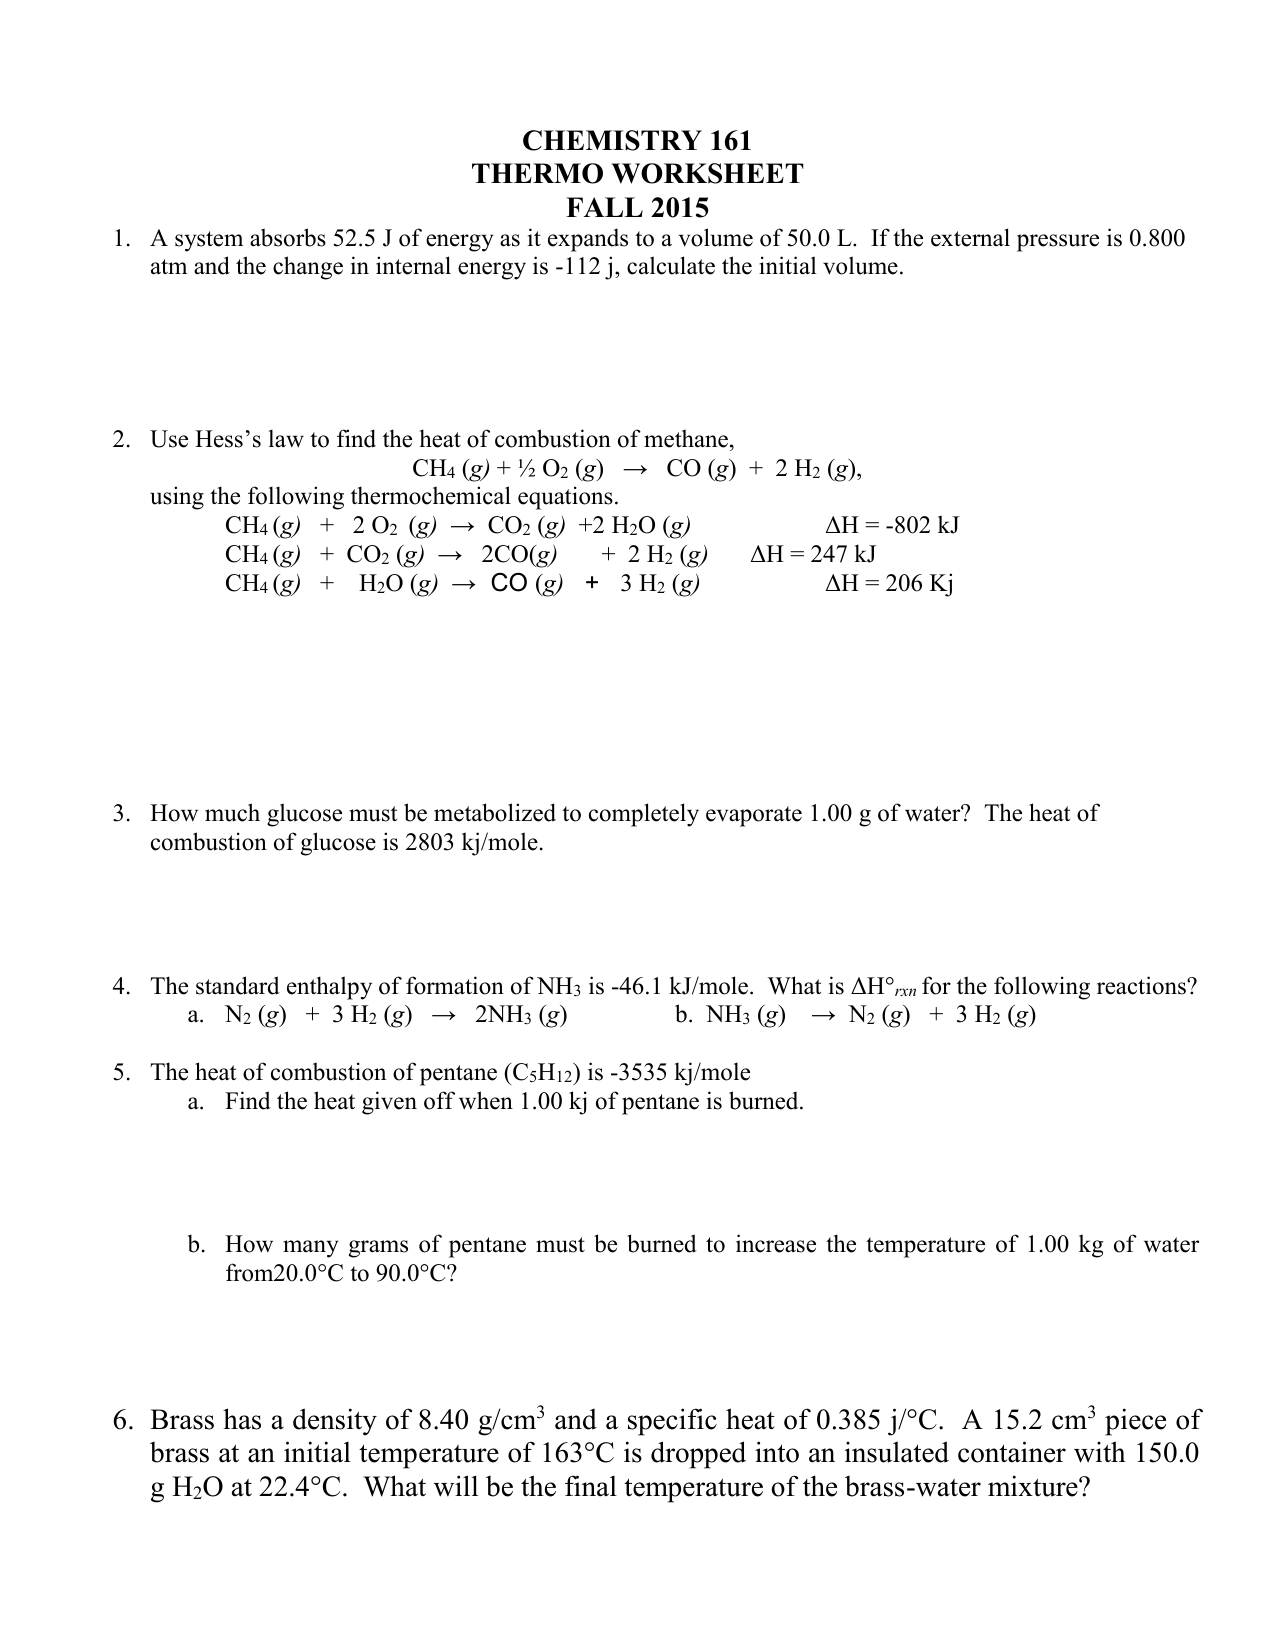 sch4u unit 3 thermochemistry assignment Assignments 1 nomenclature april 18, 2009 the following is the updated version of the table of content for the lab portfolio-many thanks to kai ip 3 electrolysis 4 electroplating february 23, 2009 please download the new unit: acid- base, for the week starting 23 february 2009 unit: acids - bases.